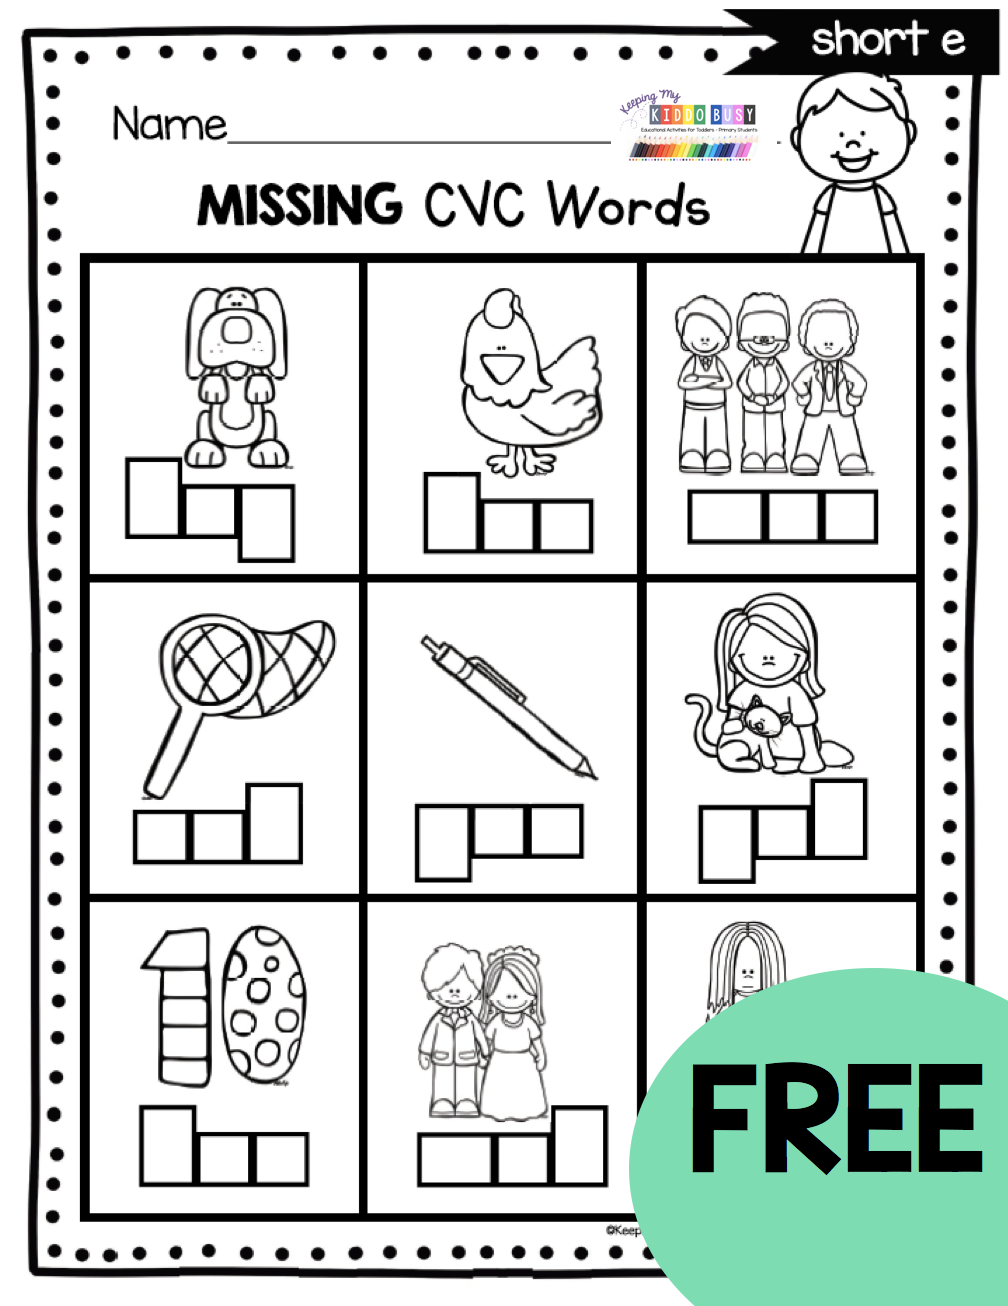 FREE Phonics Worksheets and activities for teaching short vowels CVC words  kindergarten first grade   Cvc words kindergarten [ 1306 x 1008 Pixel ]